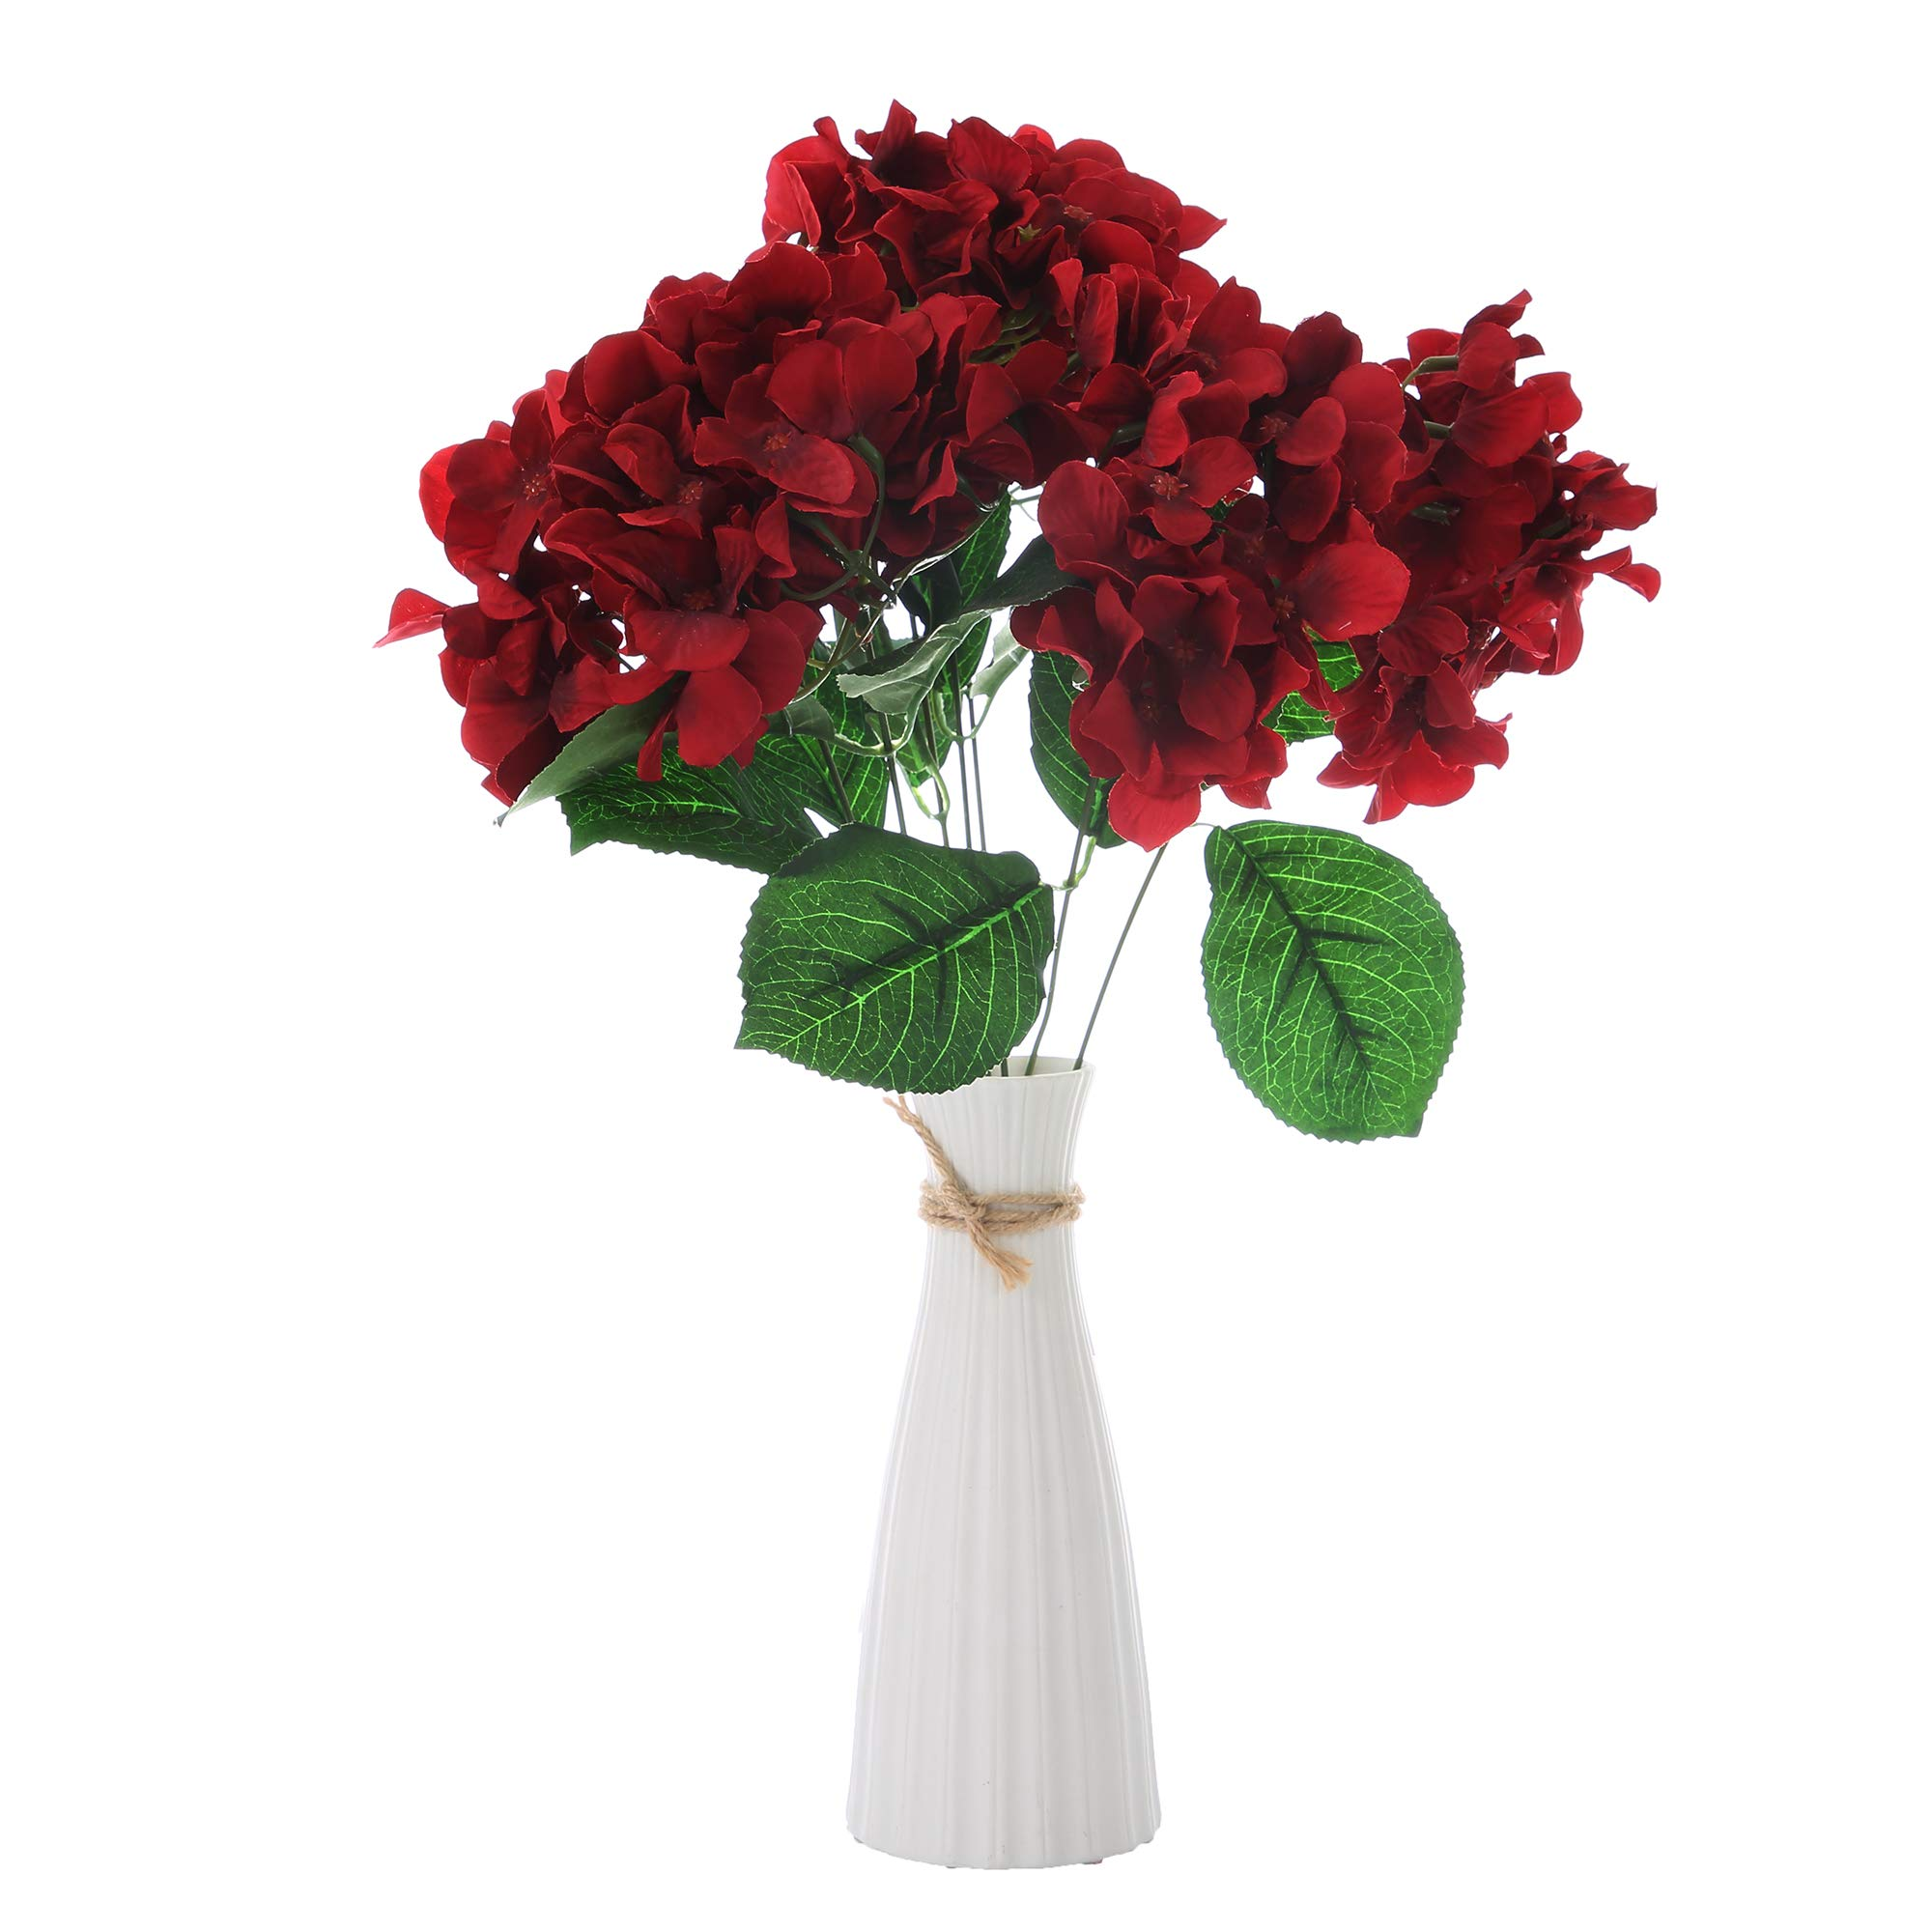 Felice Arts Artificial Flowers 18'' Silk 7 Big Head Hydrangea Bouquet for Wedding, Room, Home, Hotel, Party Decoration (Wine Red)